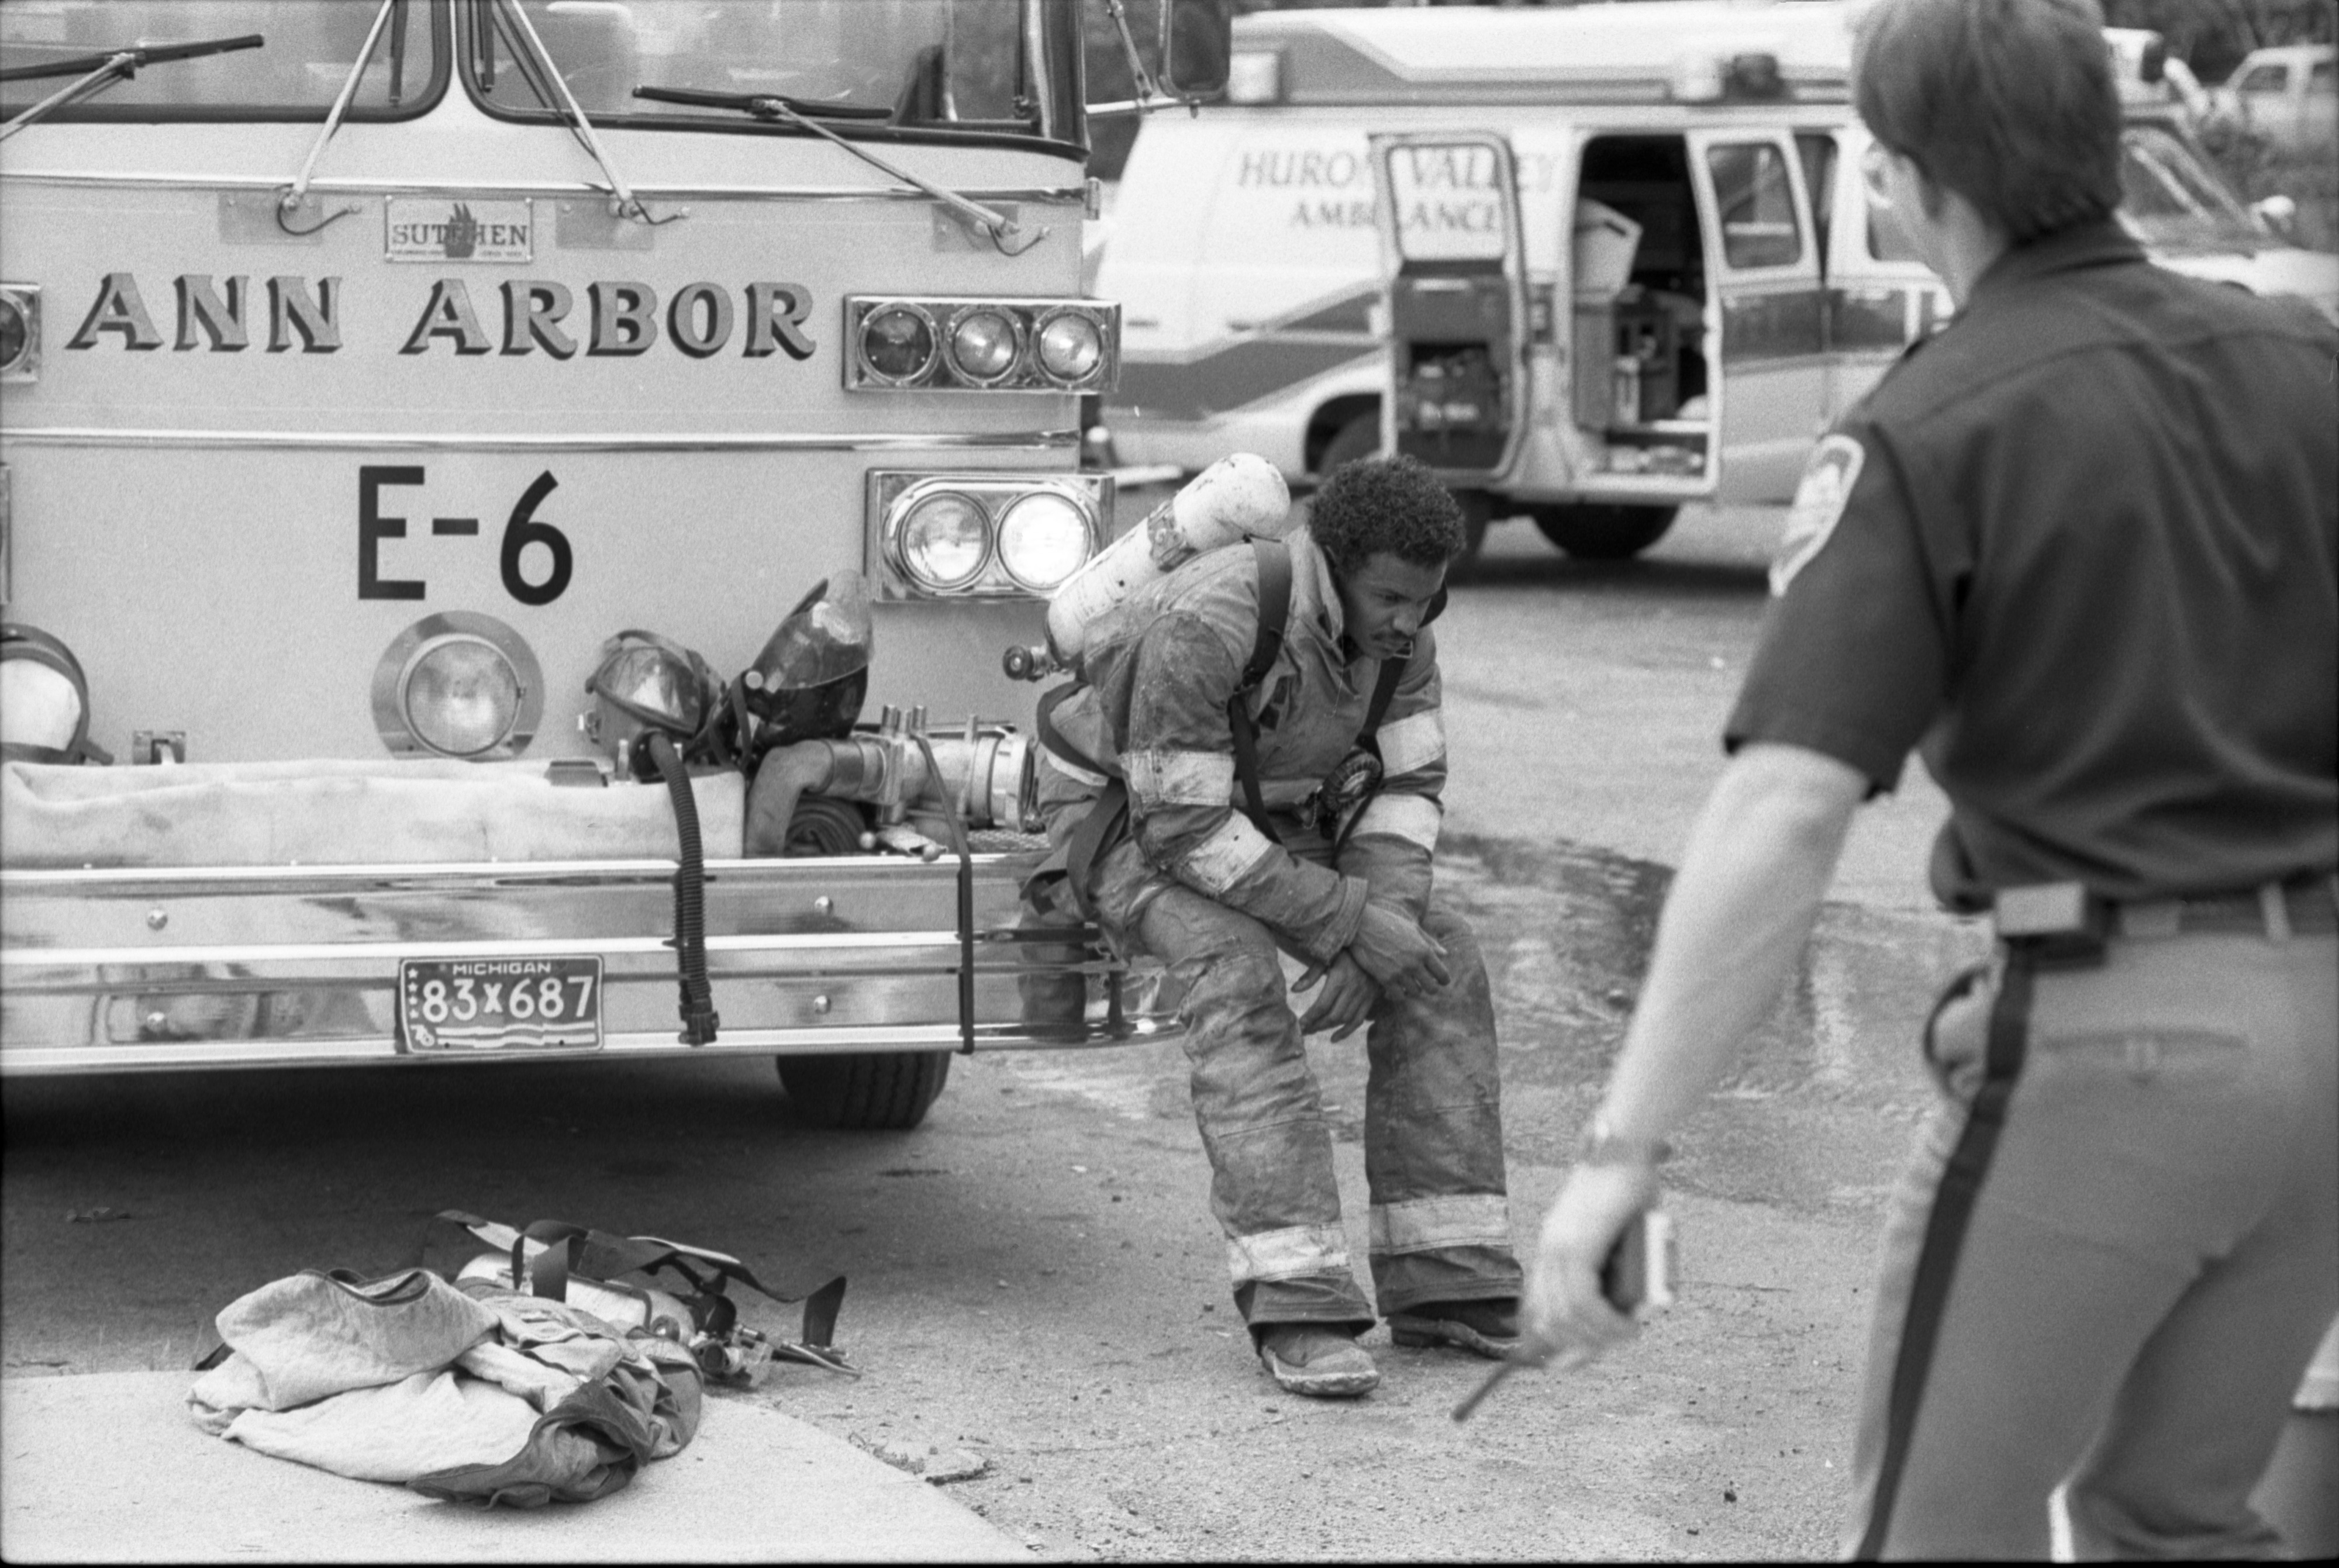 Firefighter, Chuck Hubbard After Fire Is Out At The Hikone Court Townhomes, September 24, 1986 image